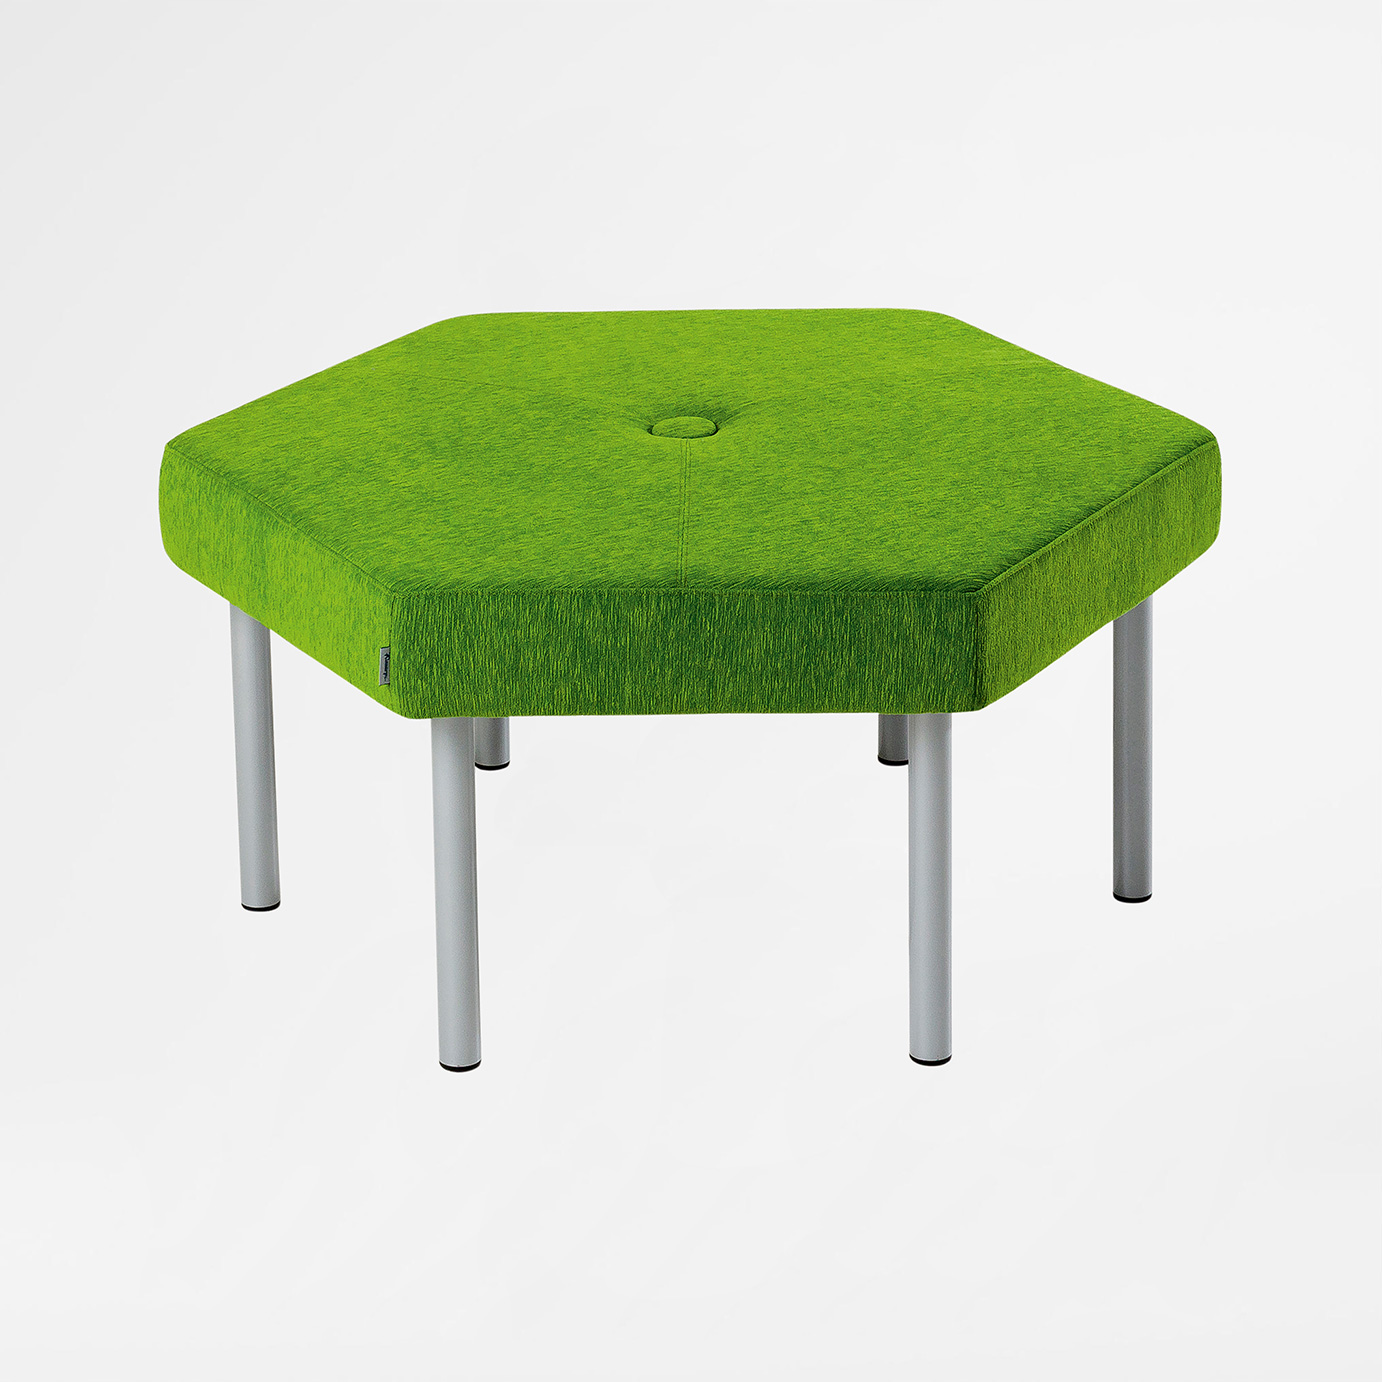 Trixagon Stool